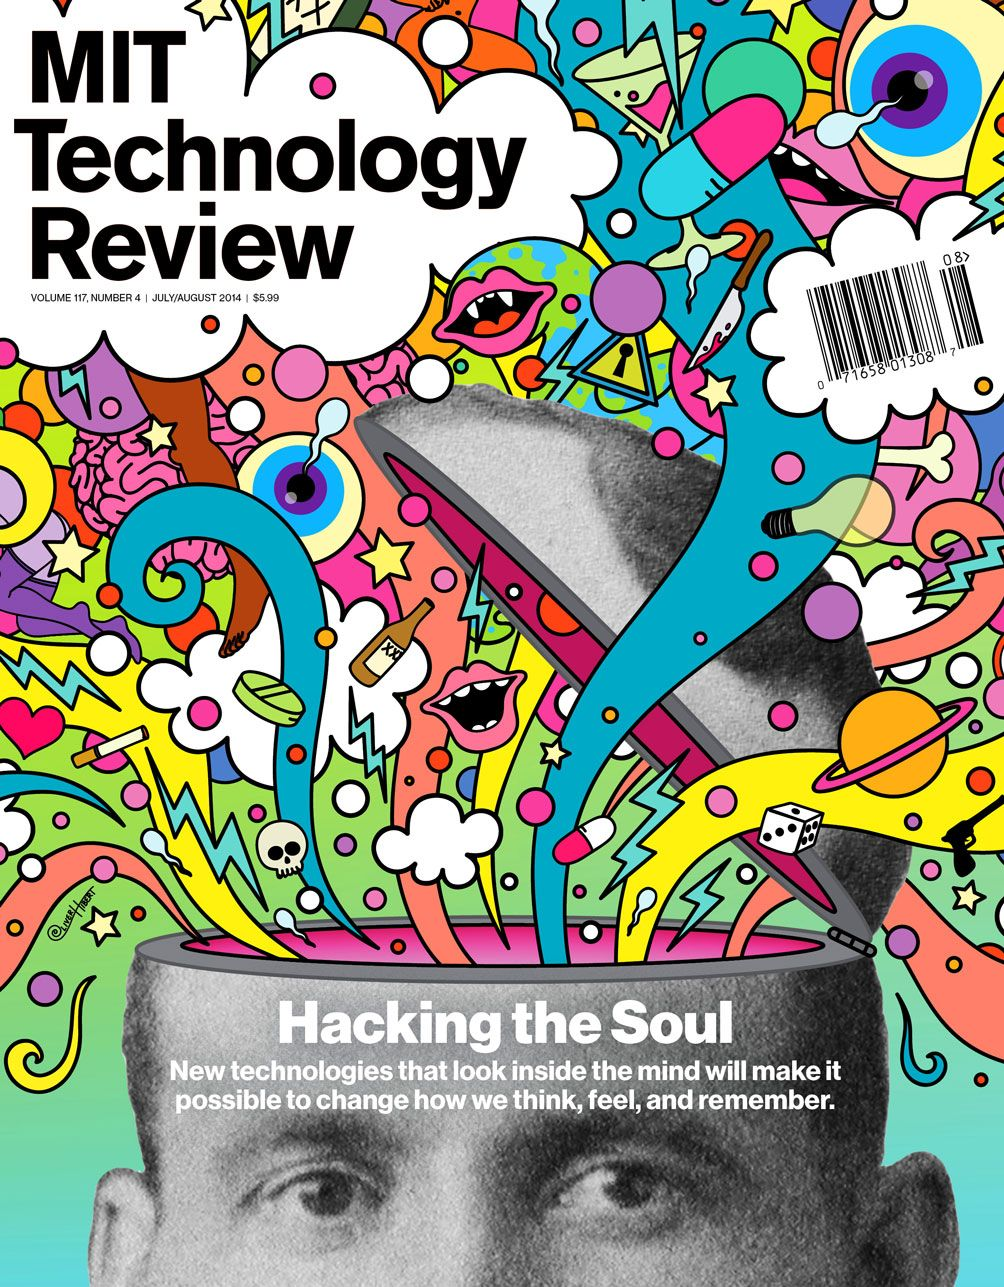 Mit Technology Review Volume 117 Number 4 July August 2014 Technology Review Book Cover Design Magazine Cover